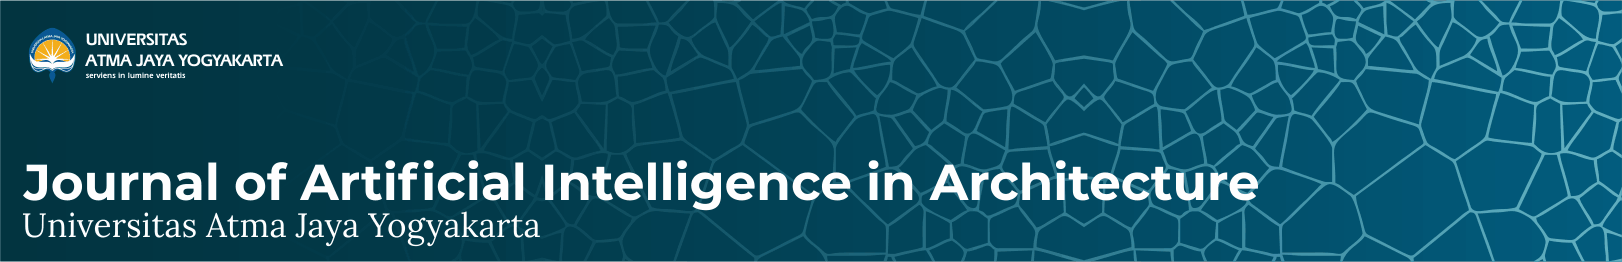 Journal of Artificial Intelligence in Architecture